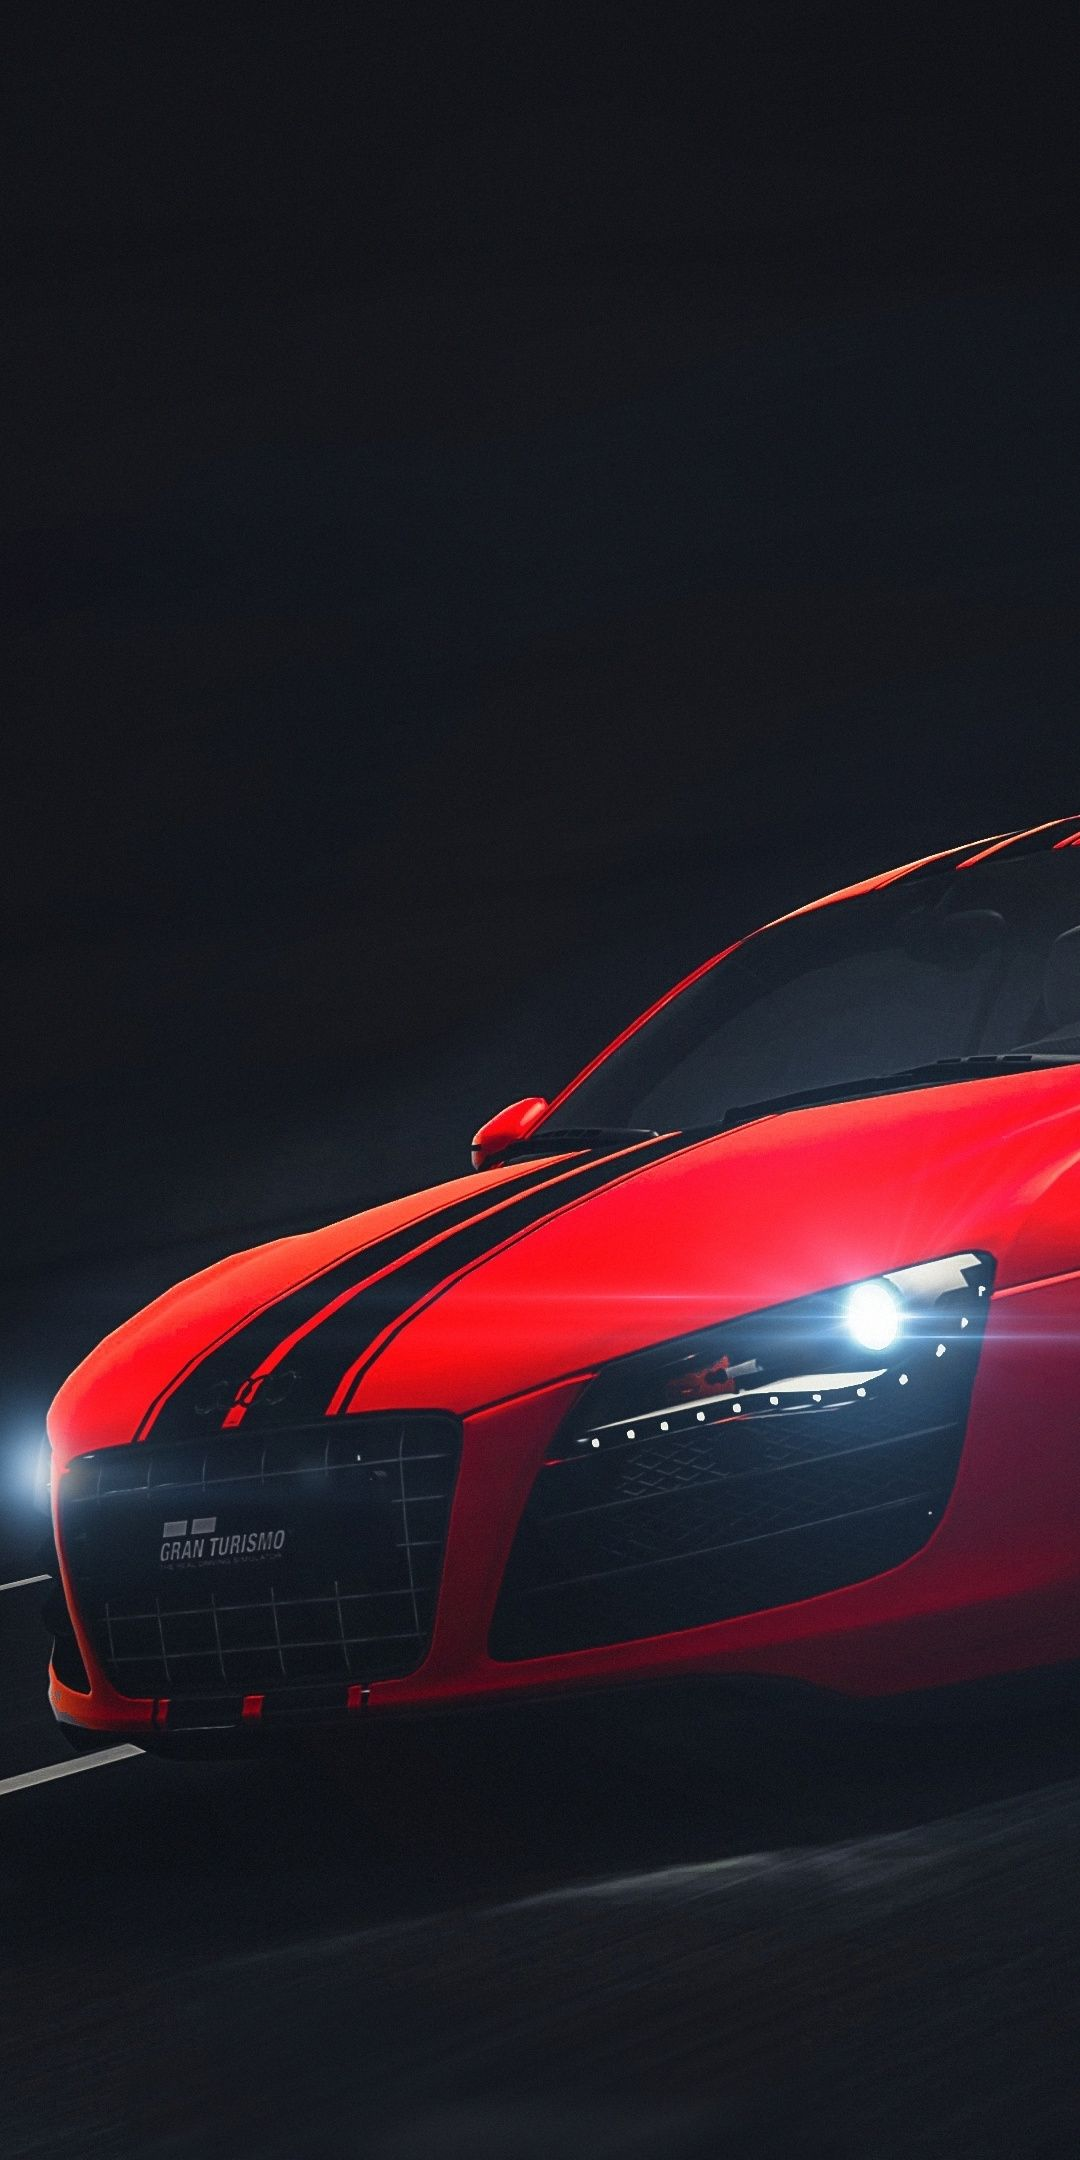 1080x2160 Red Audi R8 Type 42 Sports Car Wallpaper Red Audi R8 Sports Car Wallpaper Car Wallpaper